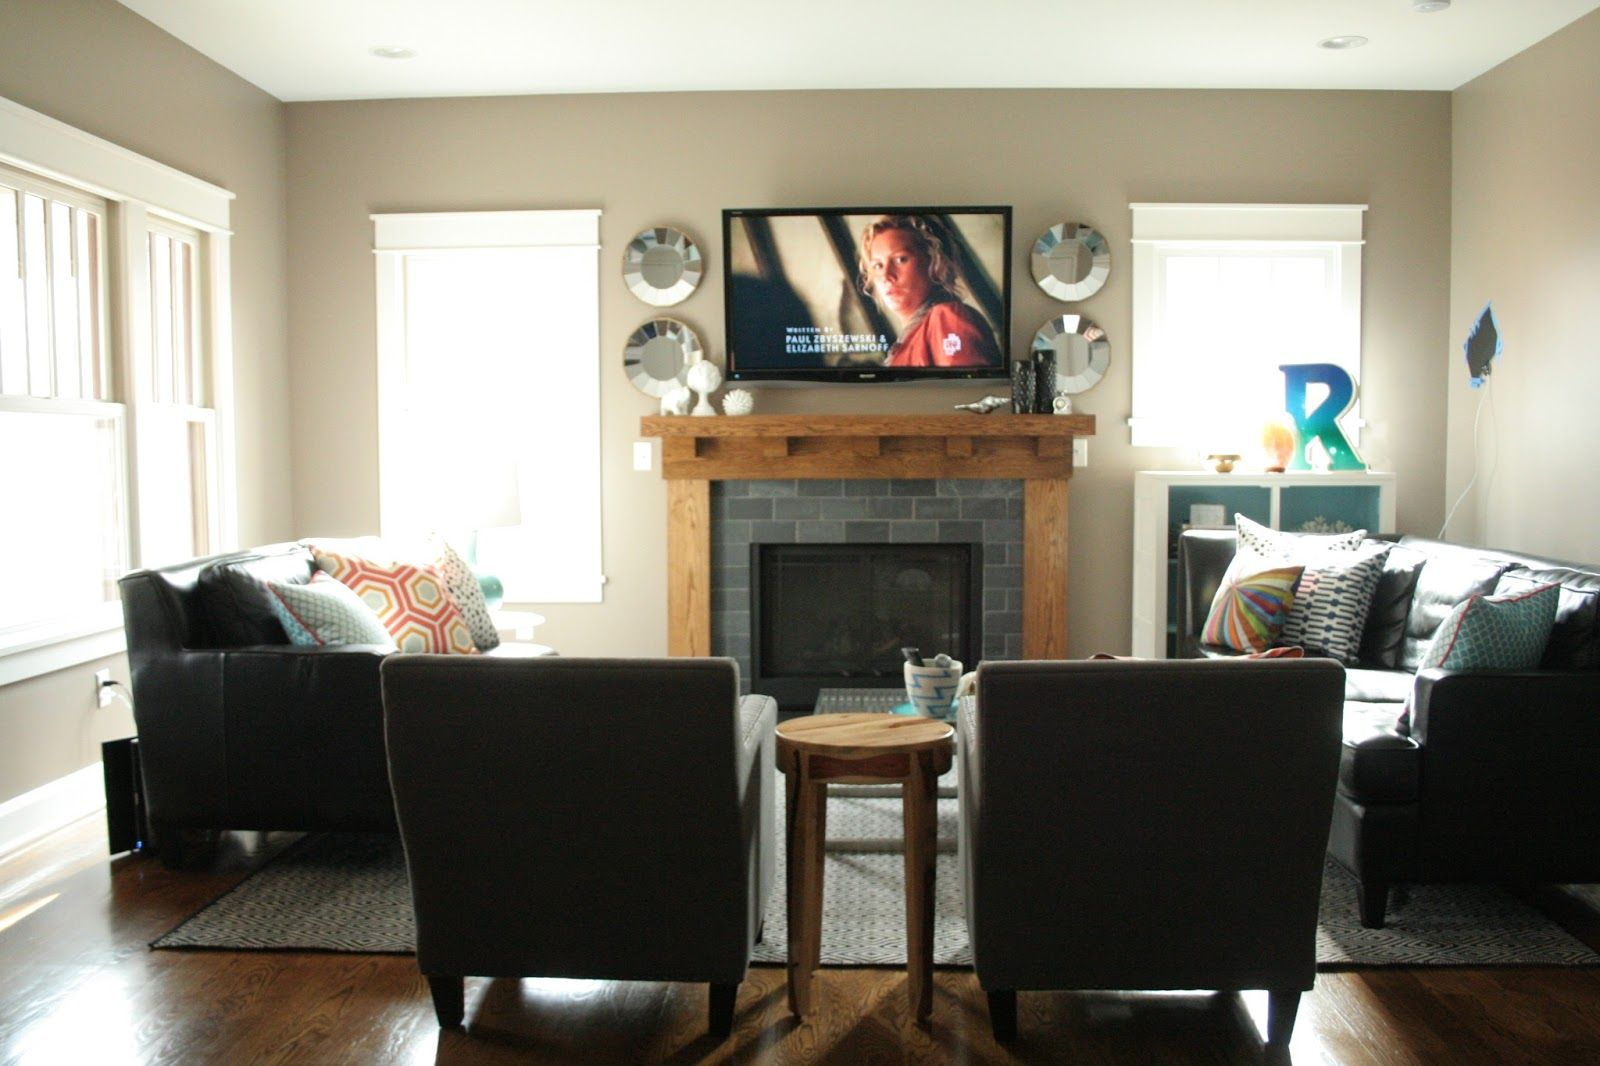 living room furniture arrangement with fireplace - Google ... on Small Space Small Living Room With Fireplace  id=48827